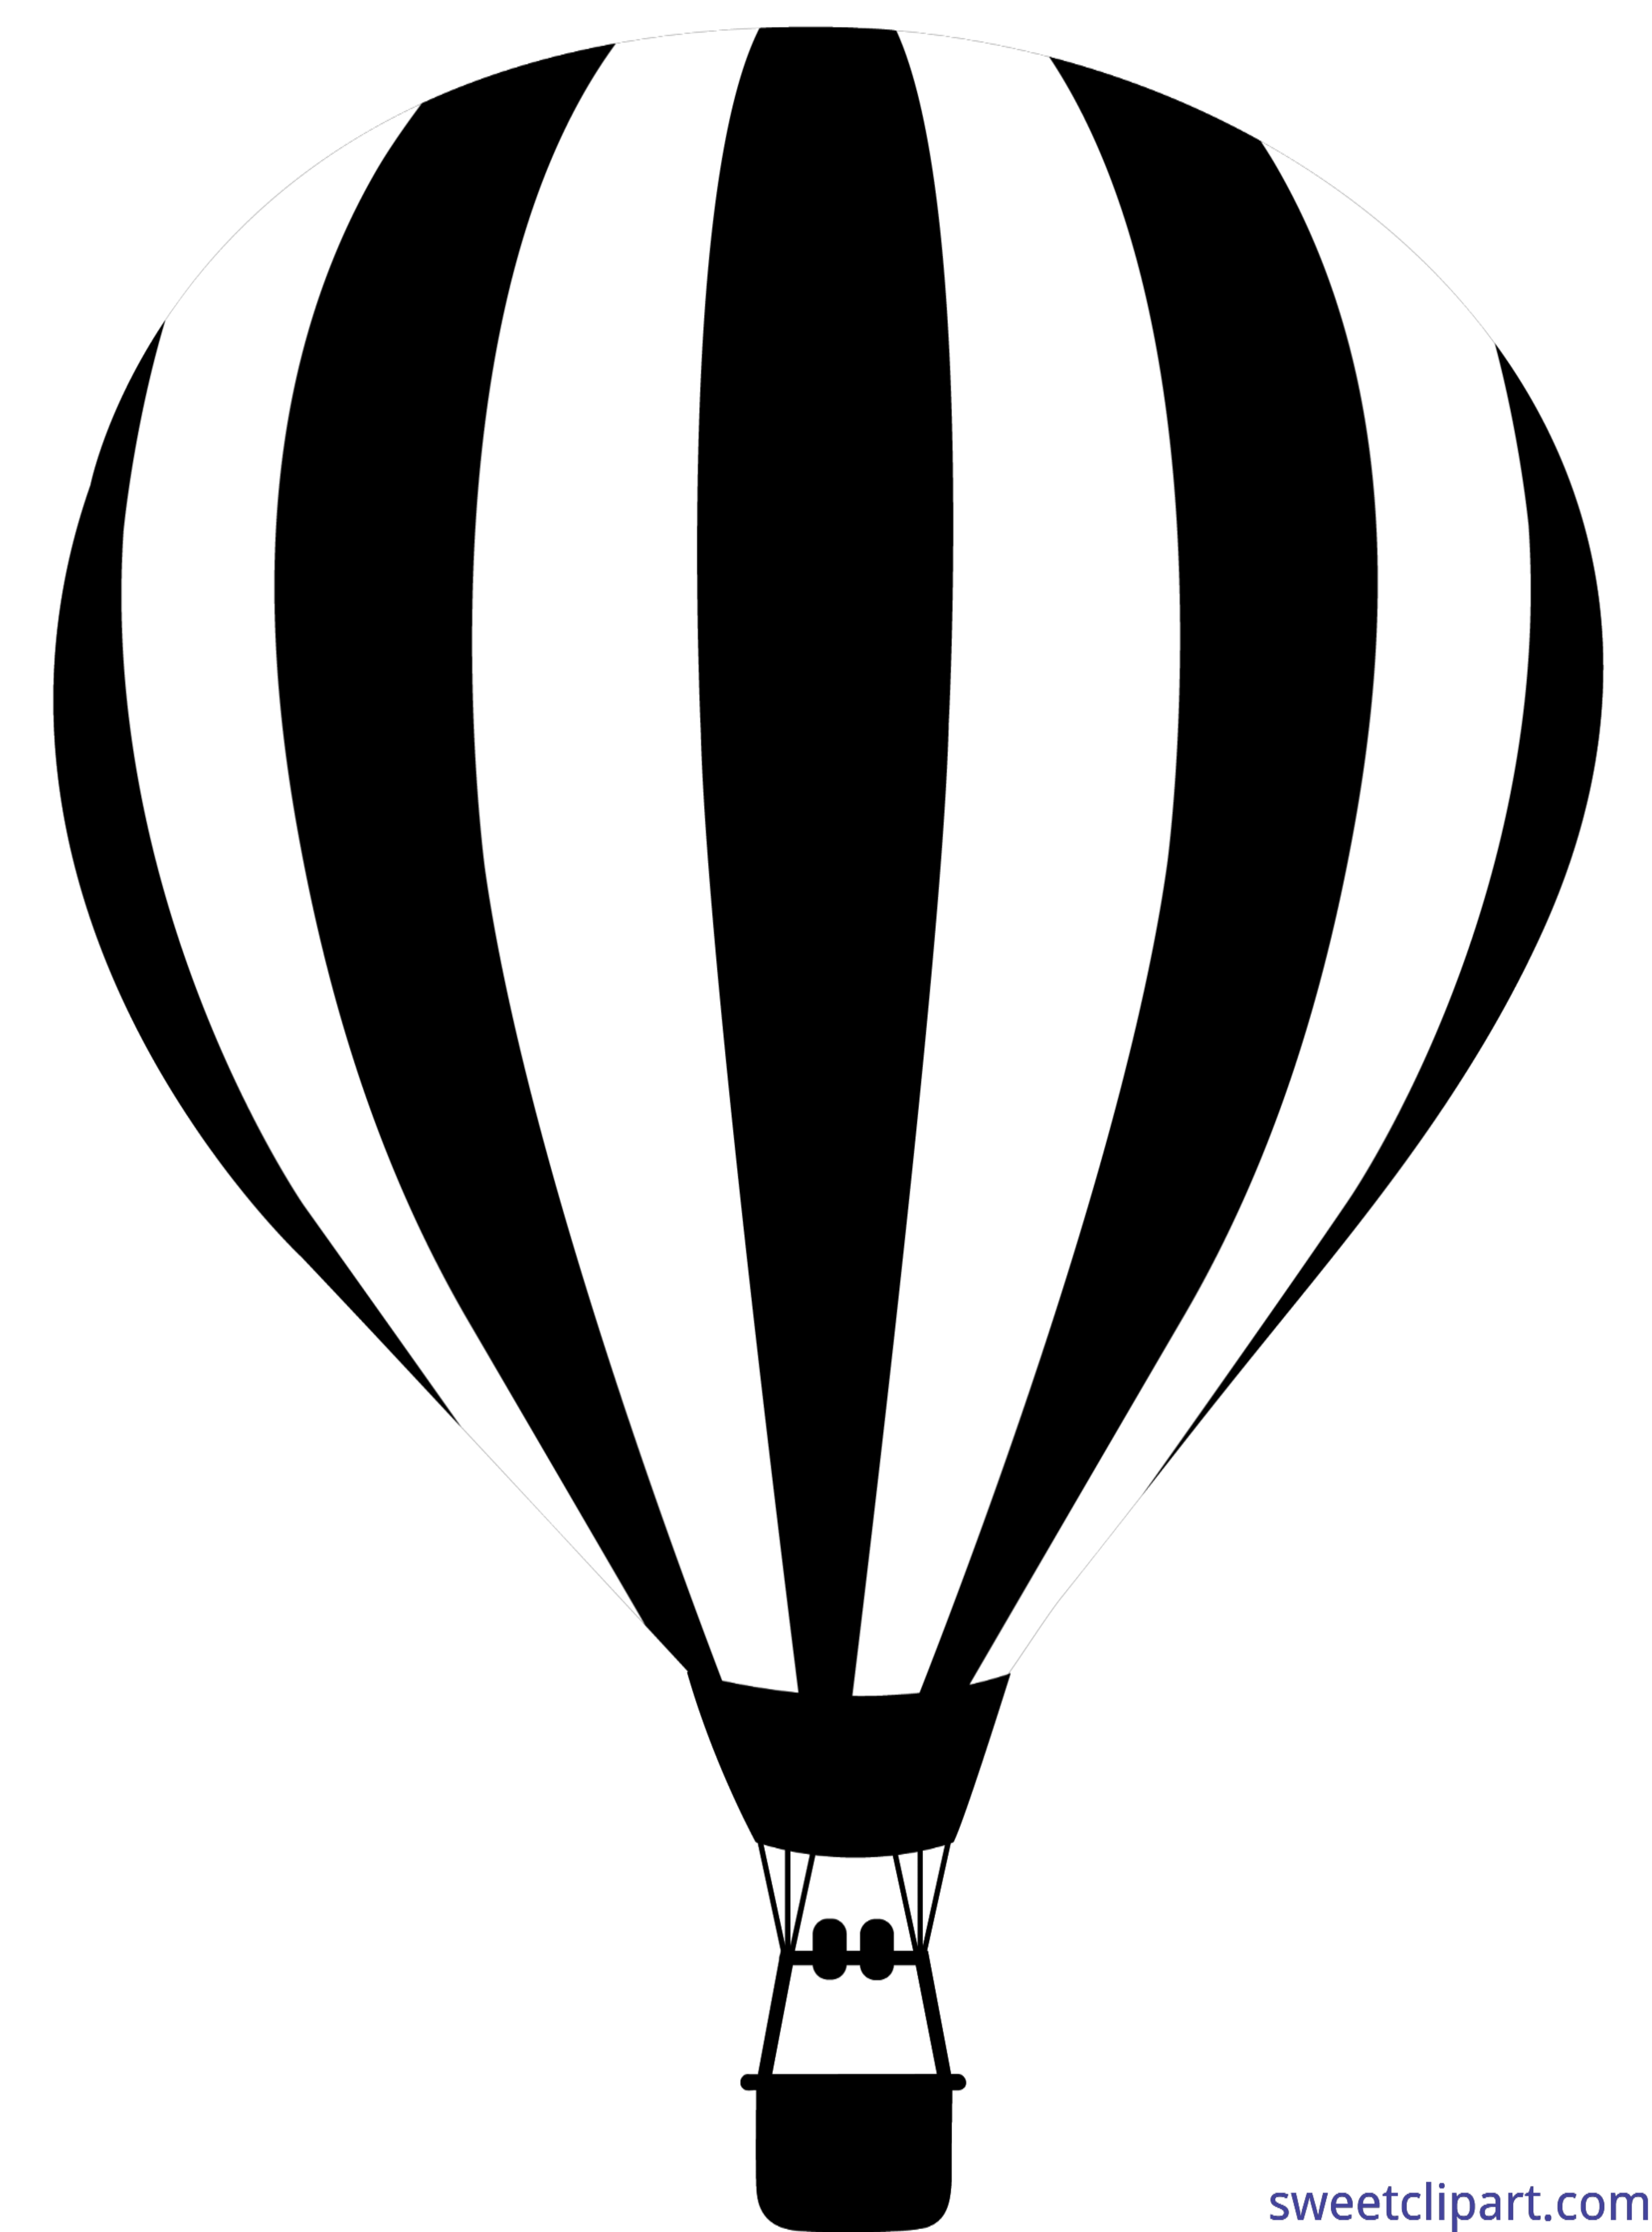 4114x5559 Hot Air Balloon Silhouette Clip Art